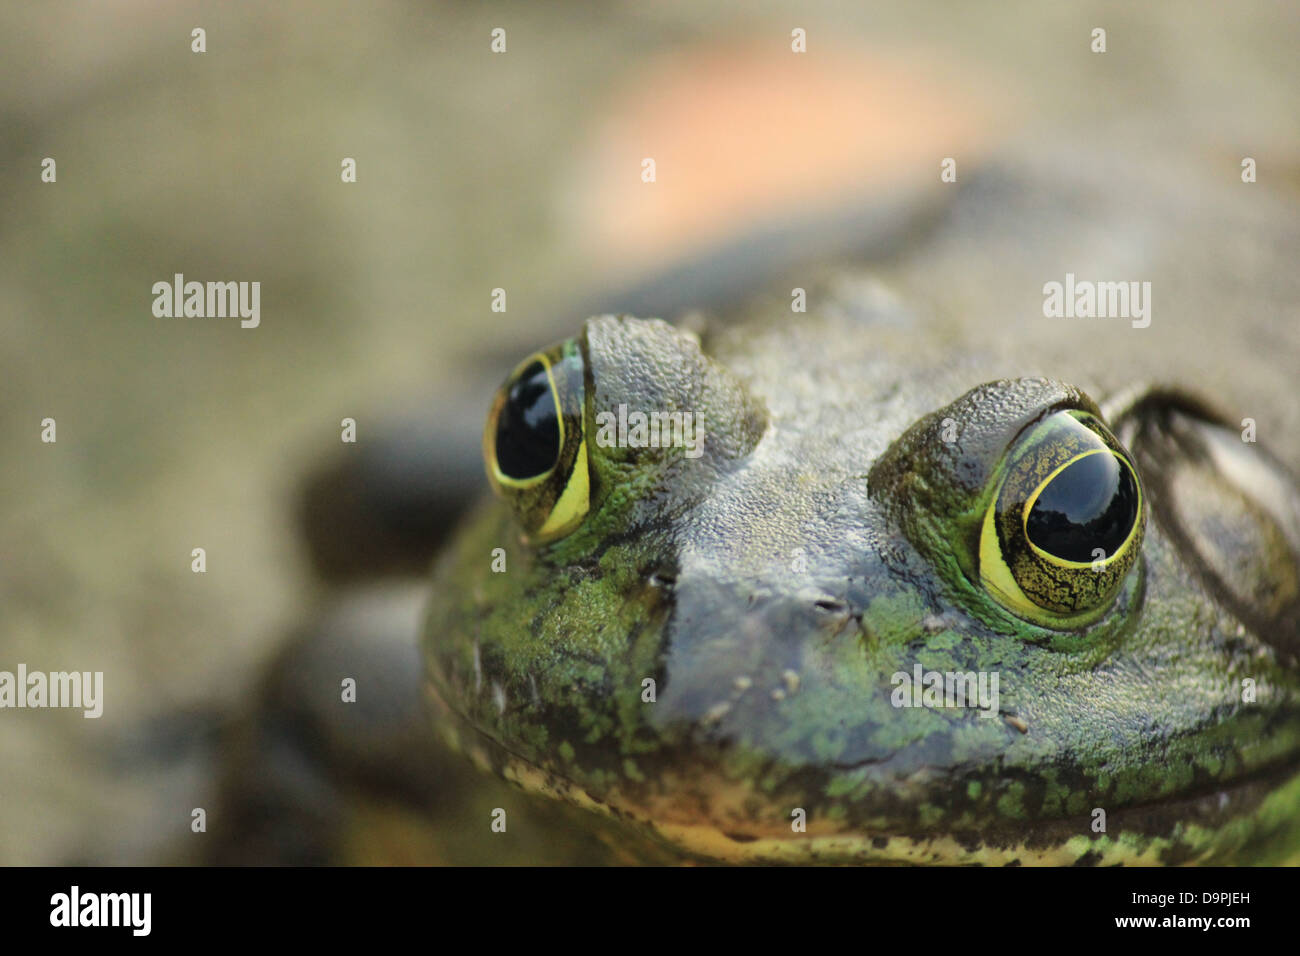 A macro picture of a frog. - Stock Image